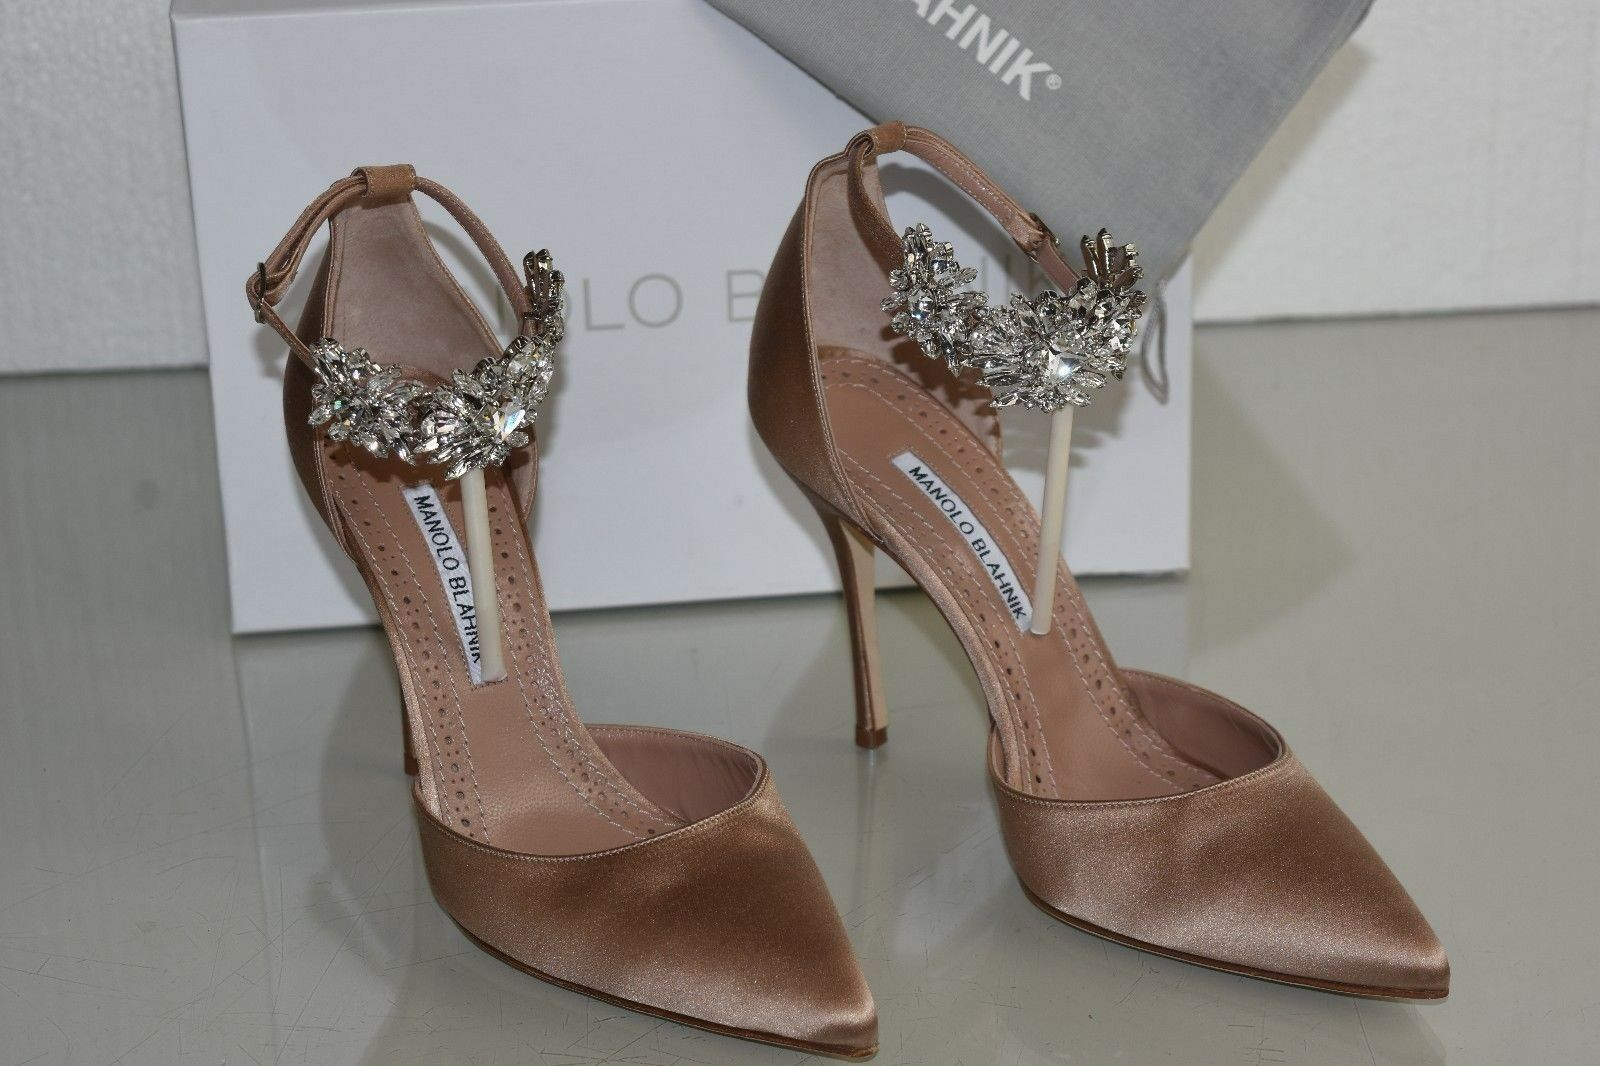 1045 NEW Manolo Blahnik Sicariata 105 Satin Pumps Jeweled shoes NUDE beige 40